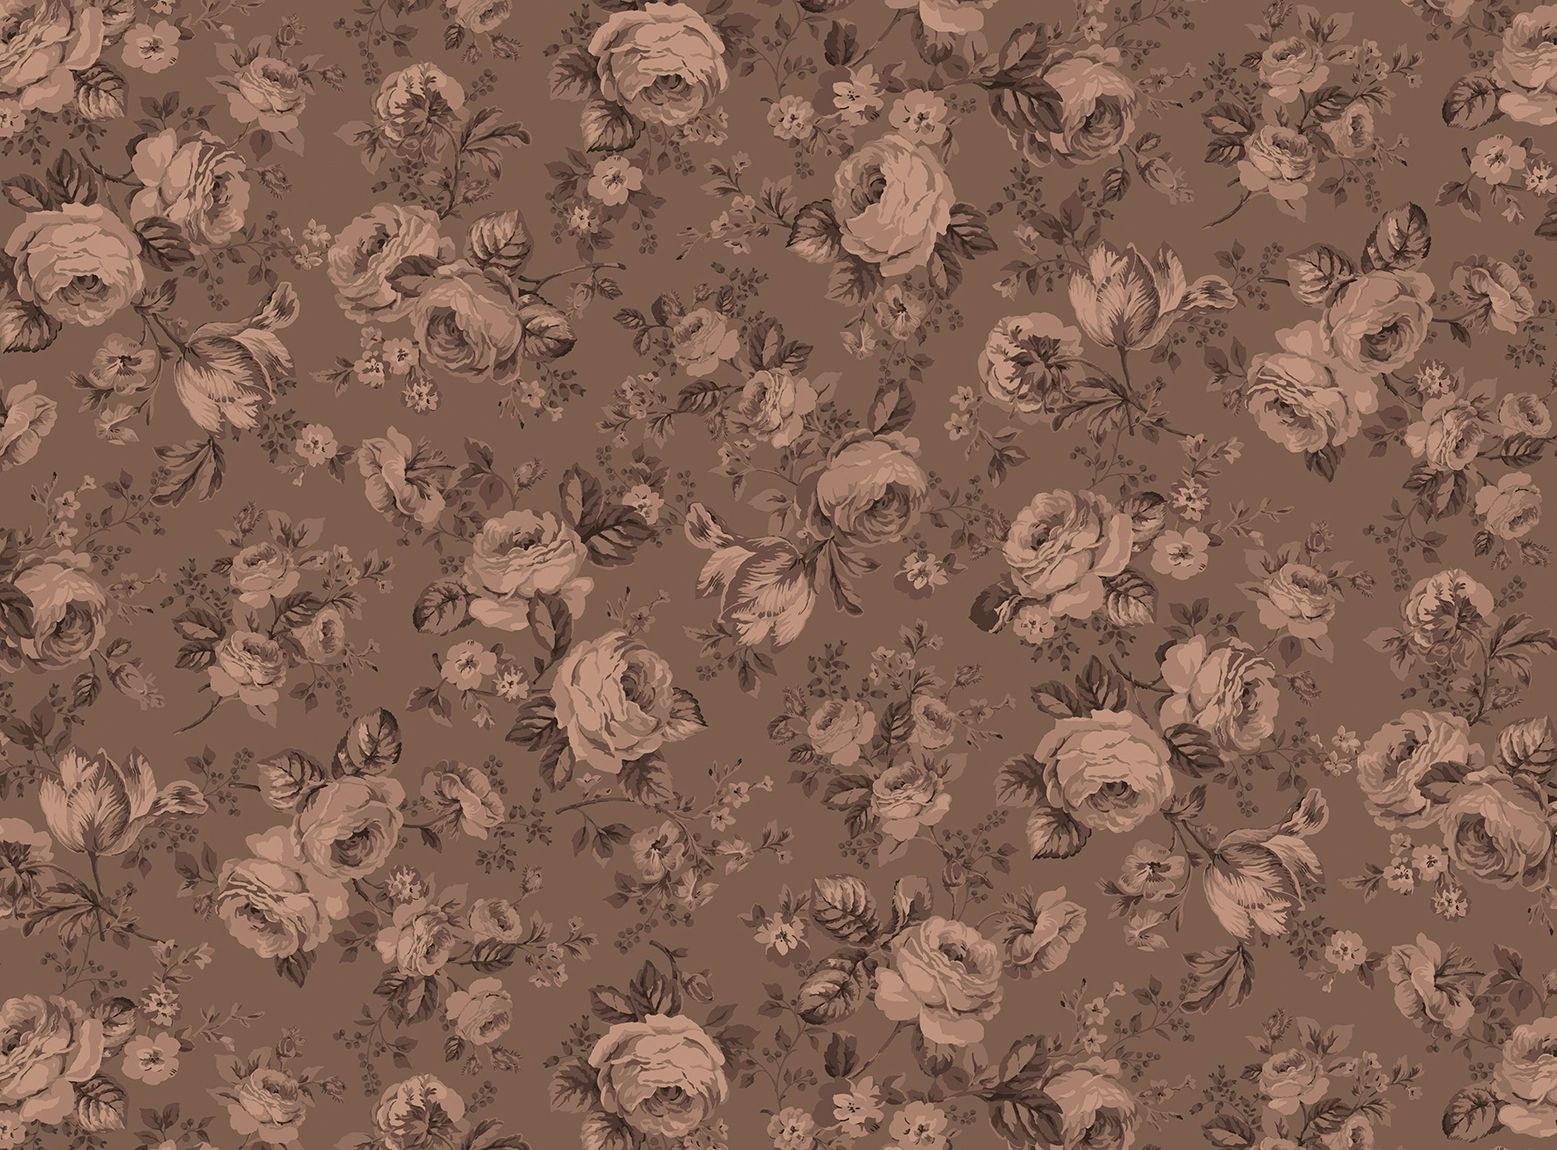 Michele's Rose by Michele D'Amore for Benartex - Wide Michele's Rose - Cocoa